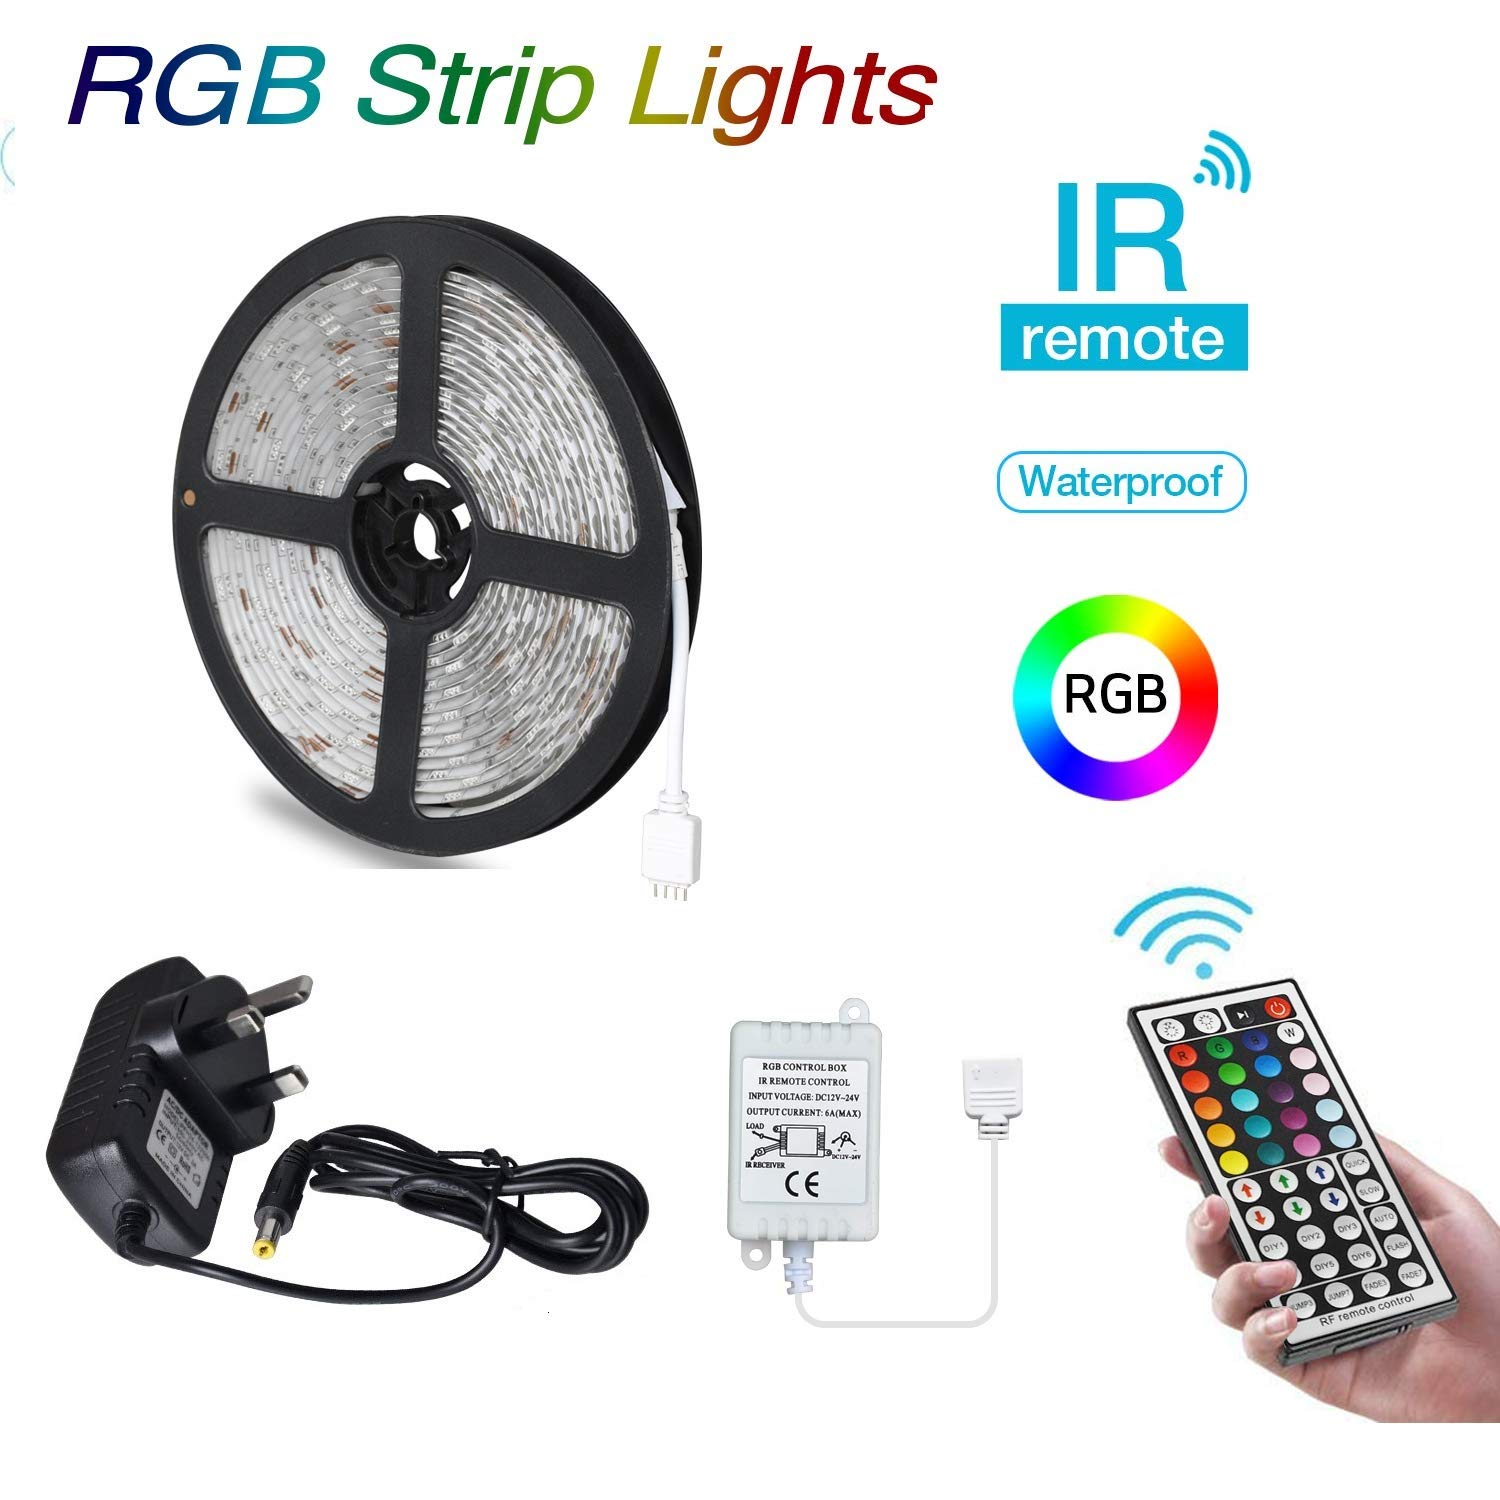 BRTLX LED TV Backlight Strip Lighting Kits 4 x 50cm for HDTV Home Theater Accent Lighting USB Powered RGB 5050 SMD Multi Colour with 24 Key Remote Control